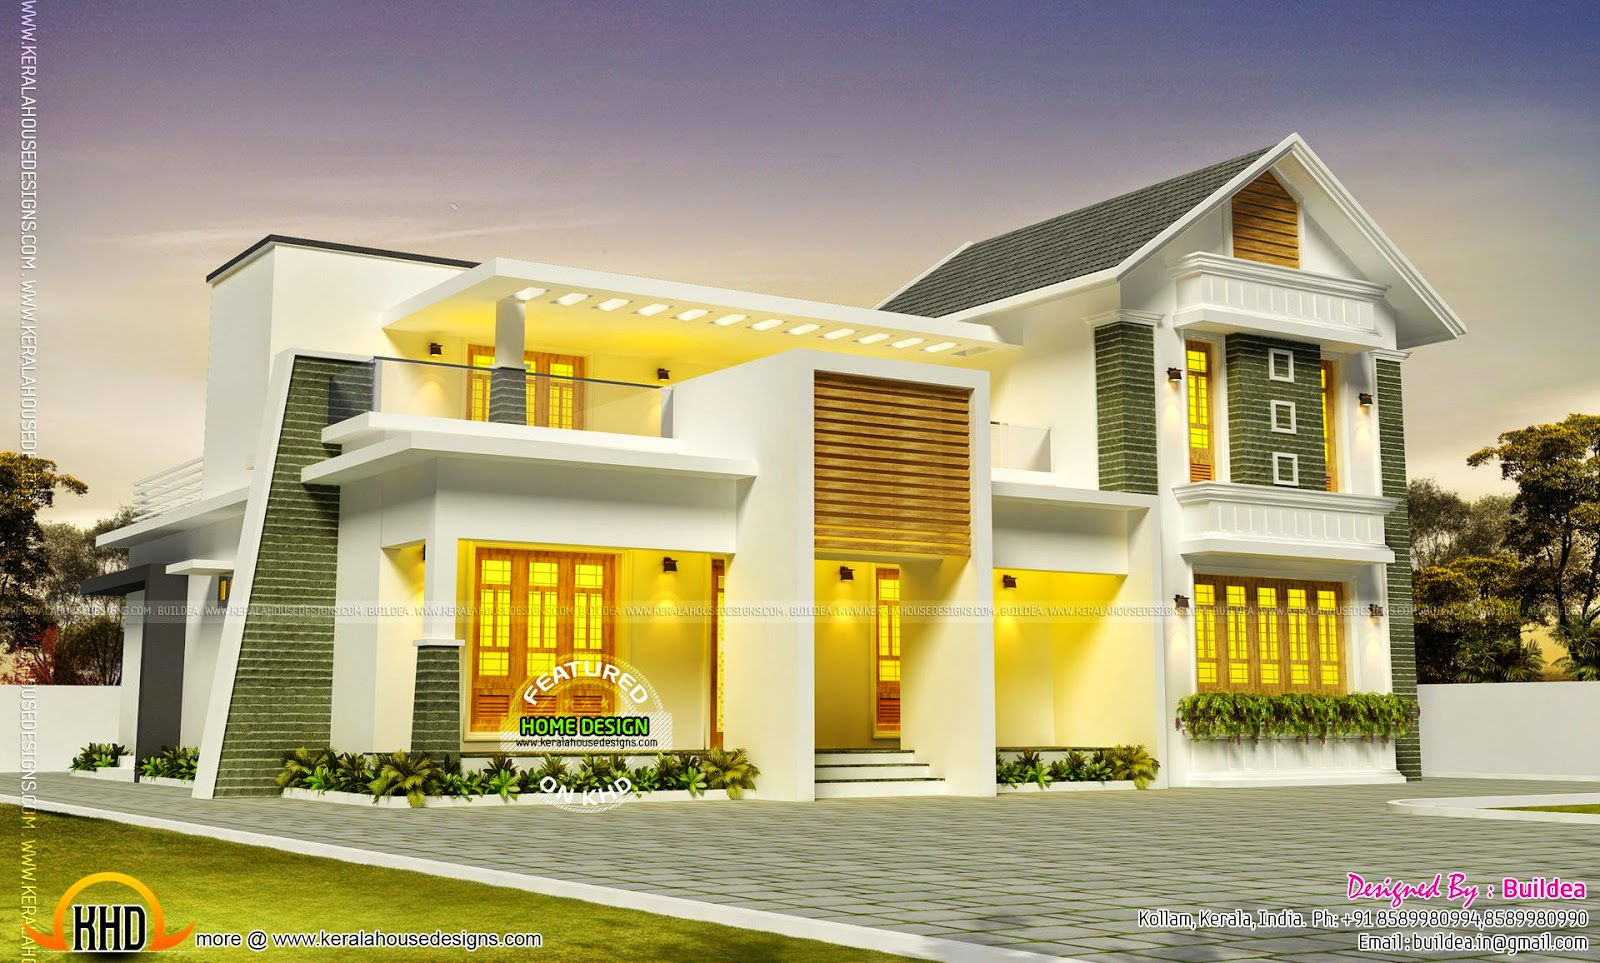 Beautiful house design in kollam kerala home design and for Beautiful house design images